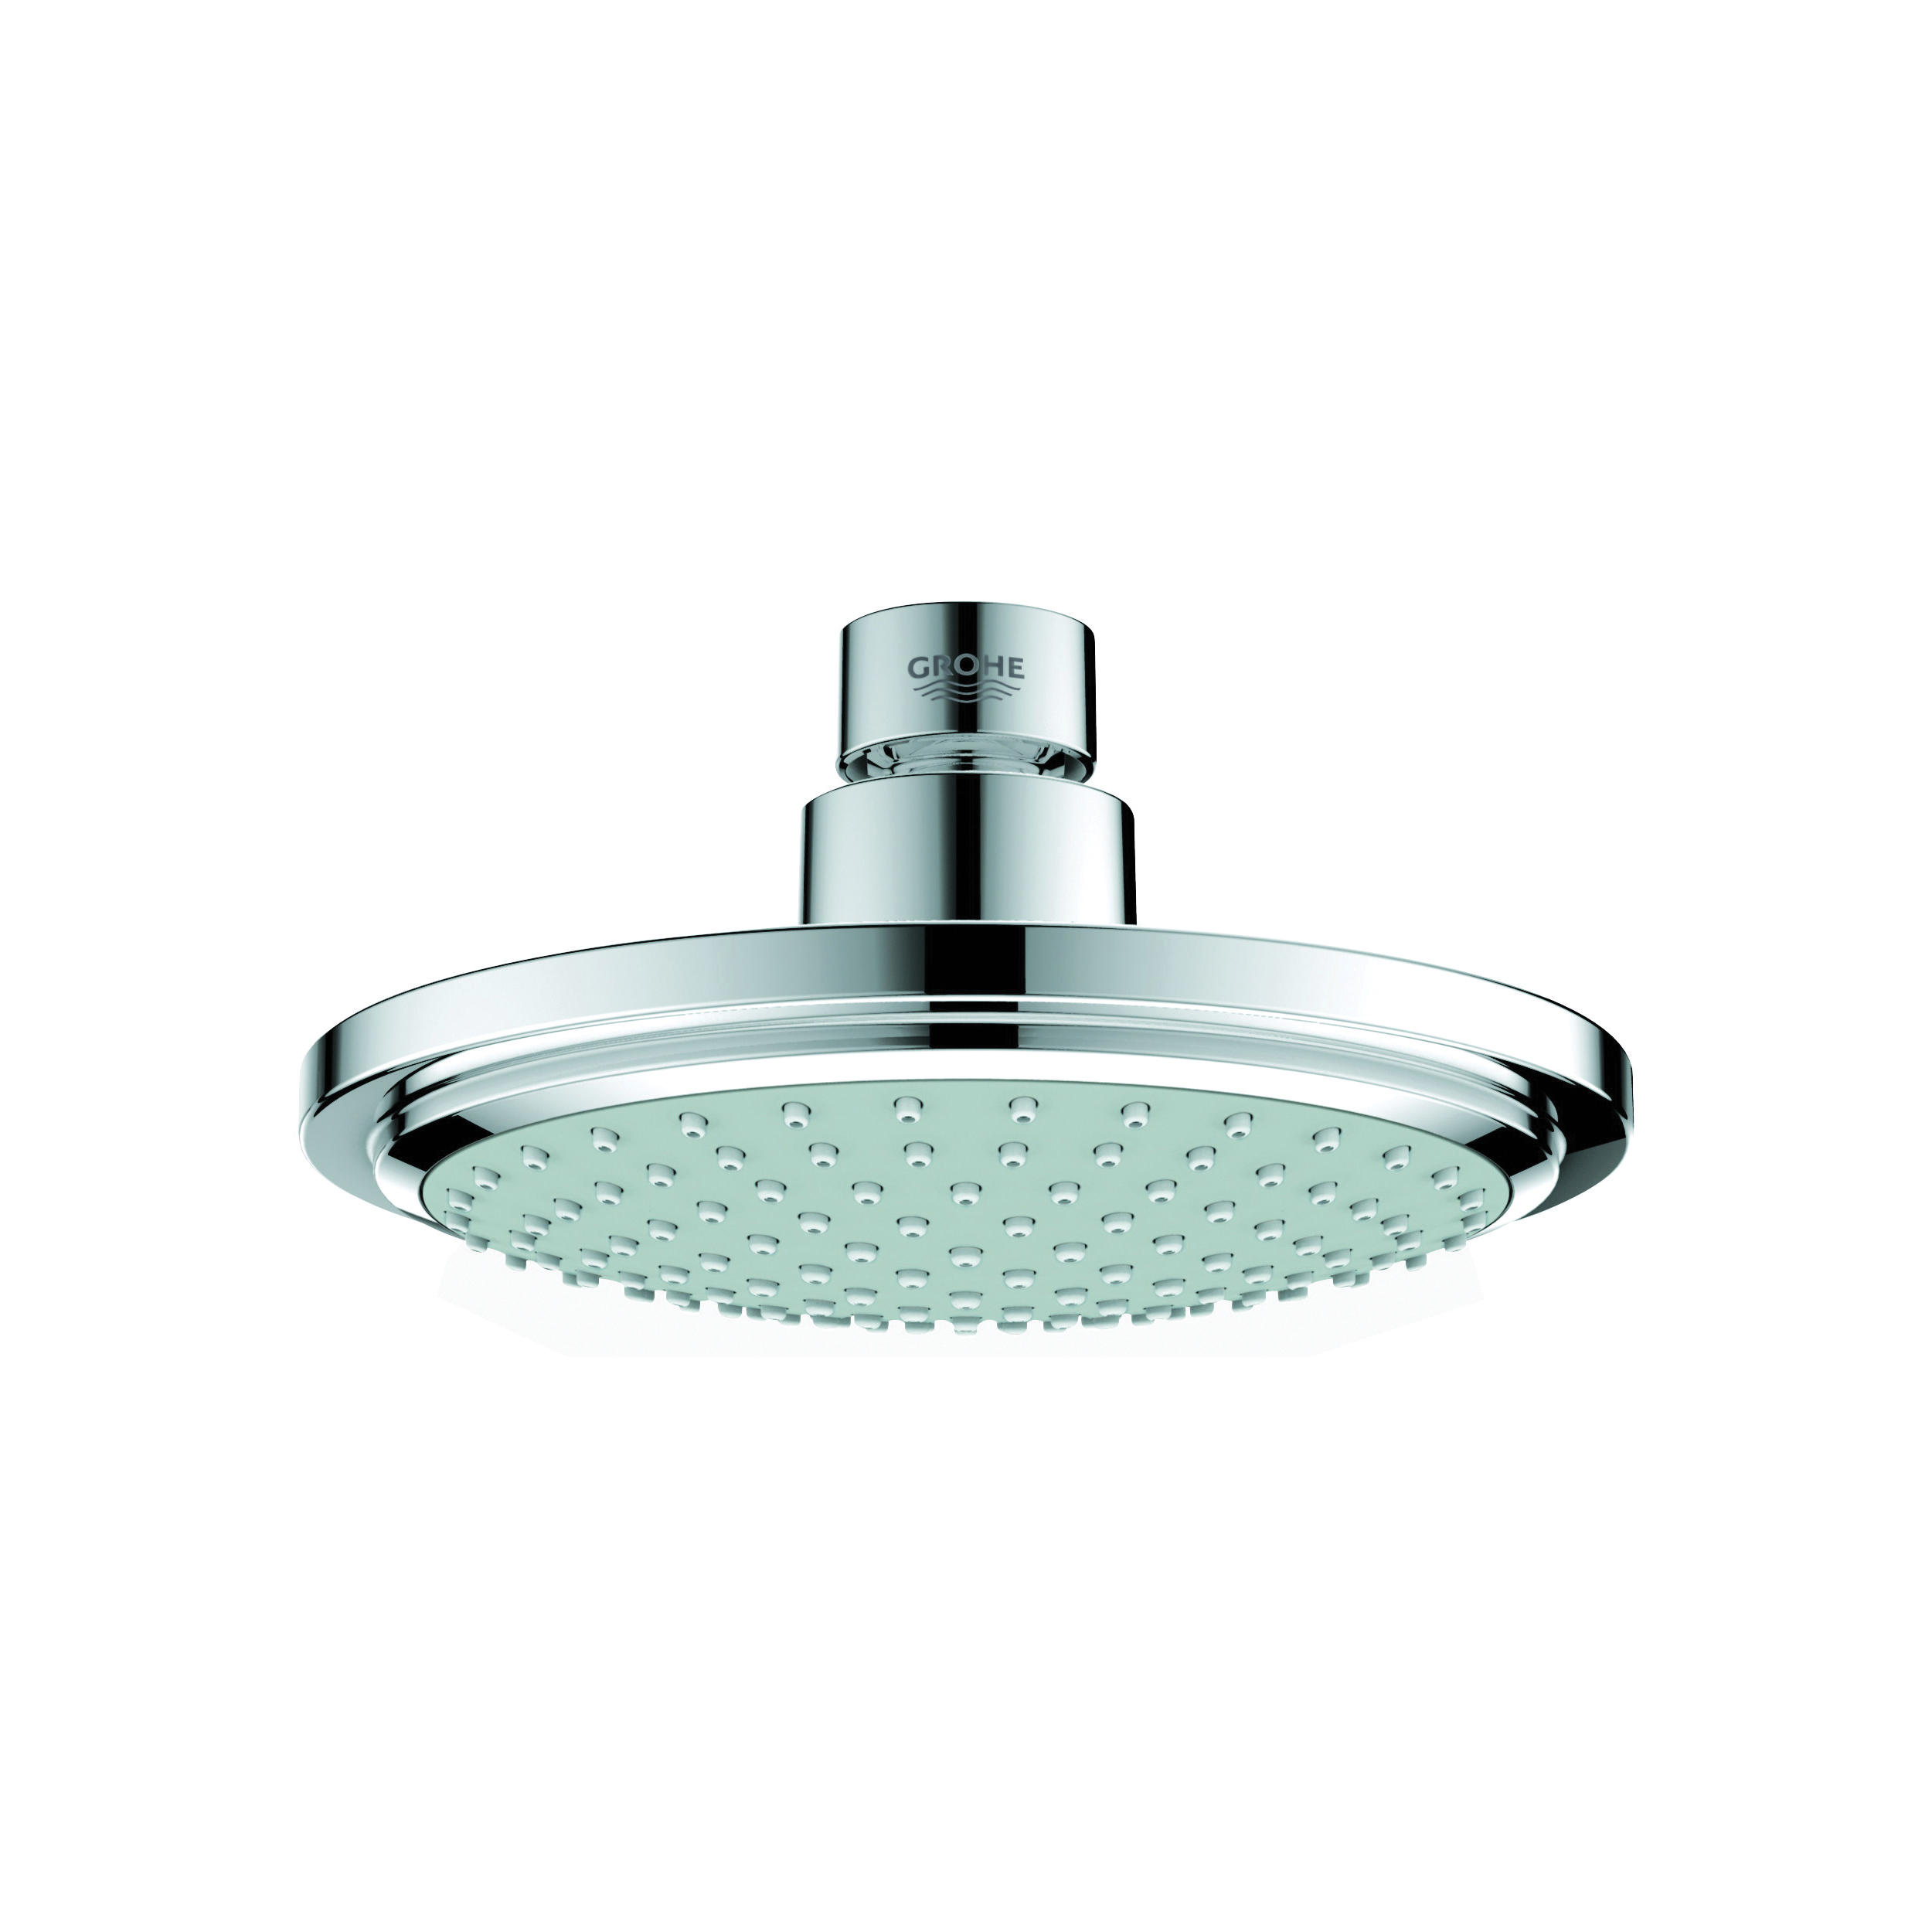 GROHE 28233000 Euphoria Cosmopolitan 160 Shower Head, 2.4 gpm, 1 Spray, Wall Mount, 6-5/16 in Dia Head, Import